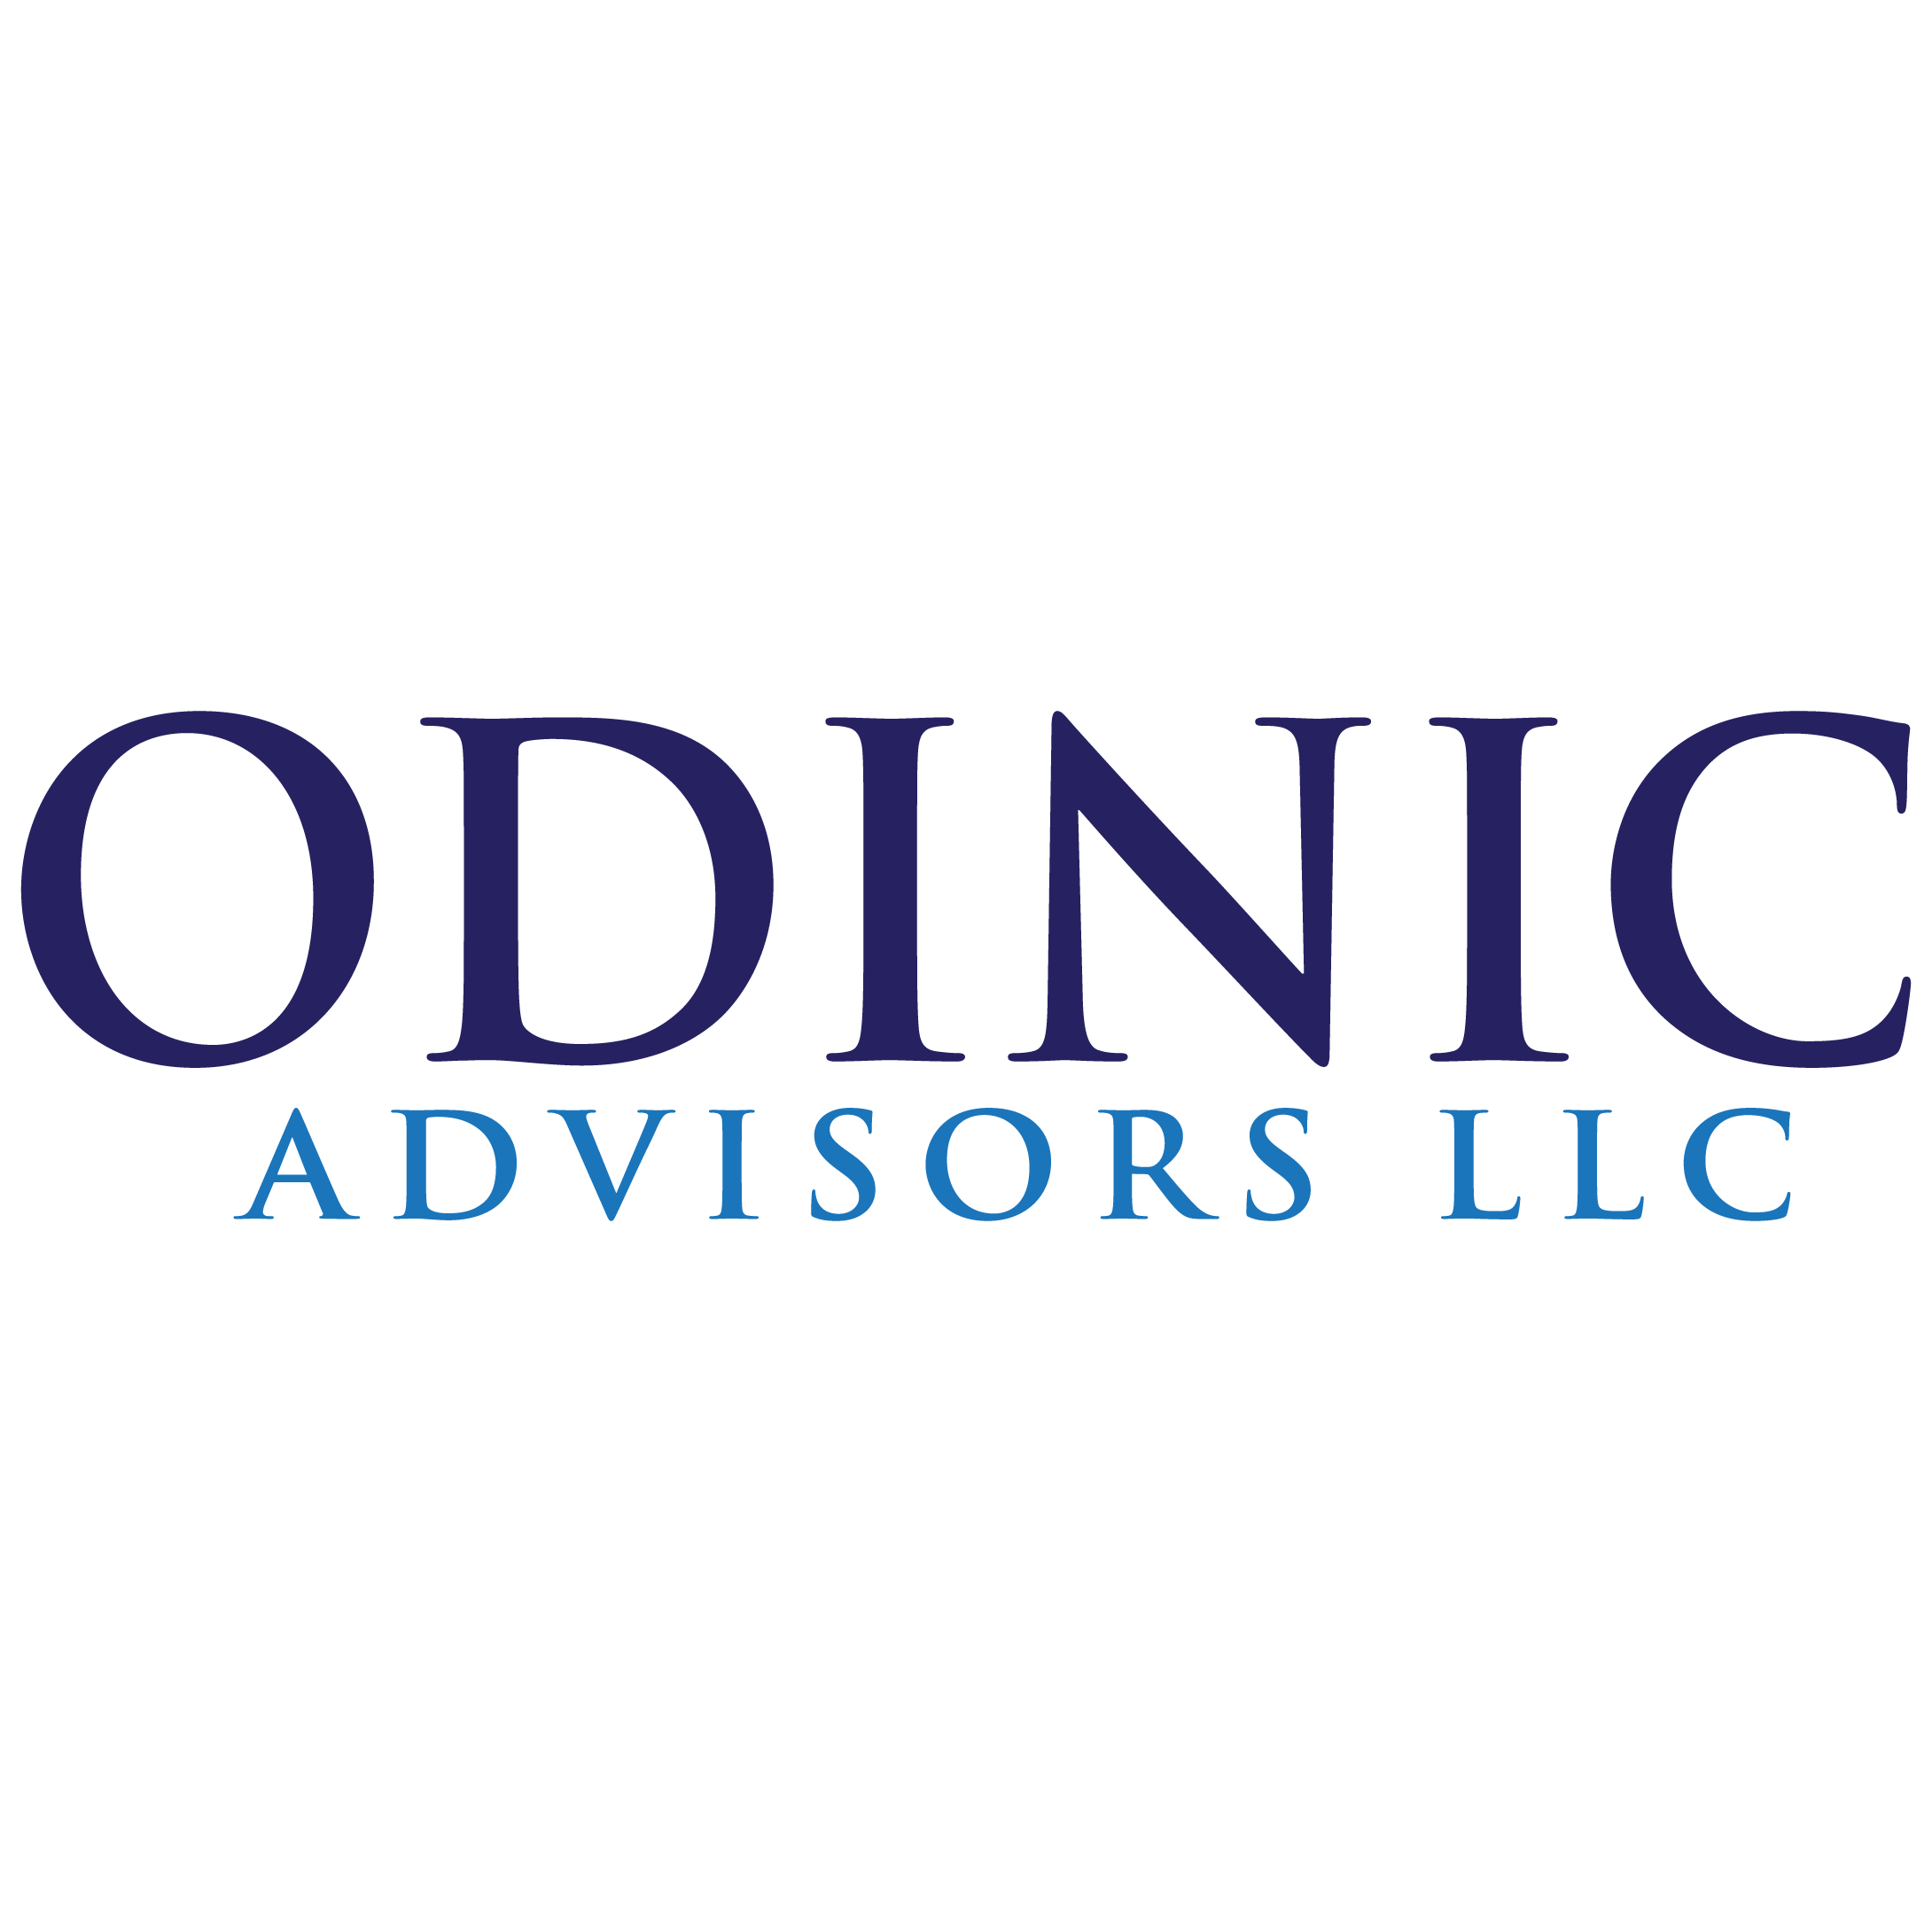 Odinic Advisors LLC